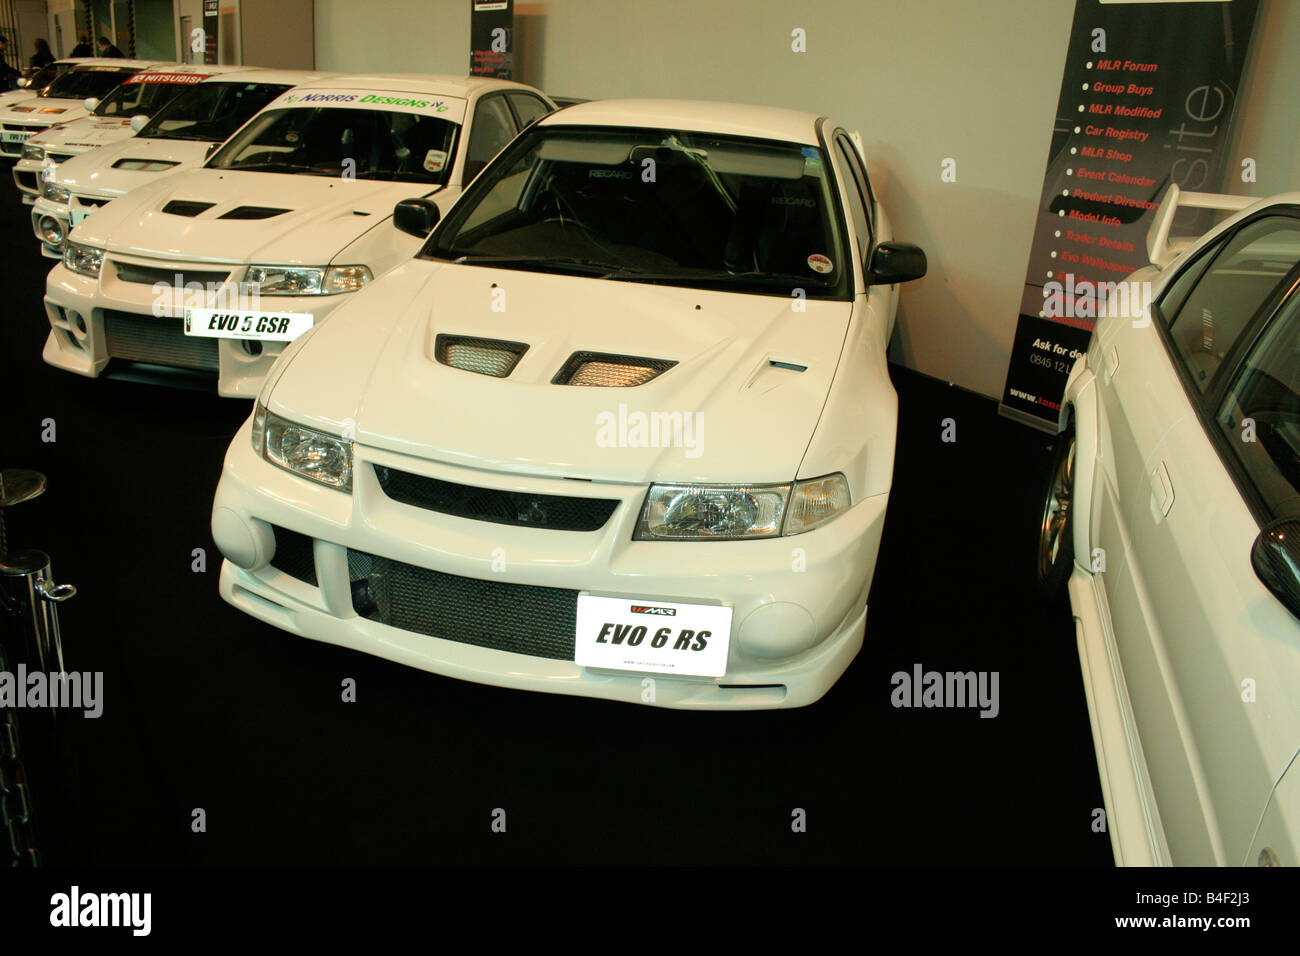 mitsubishi evo 6 rs im line-up stockfoto, bild: 20000347 - alamy